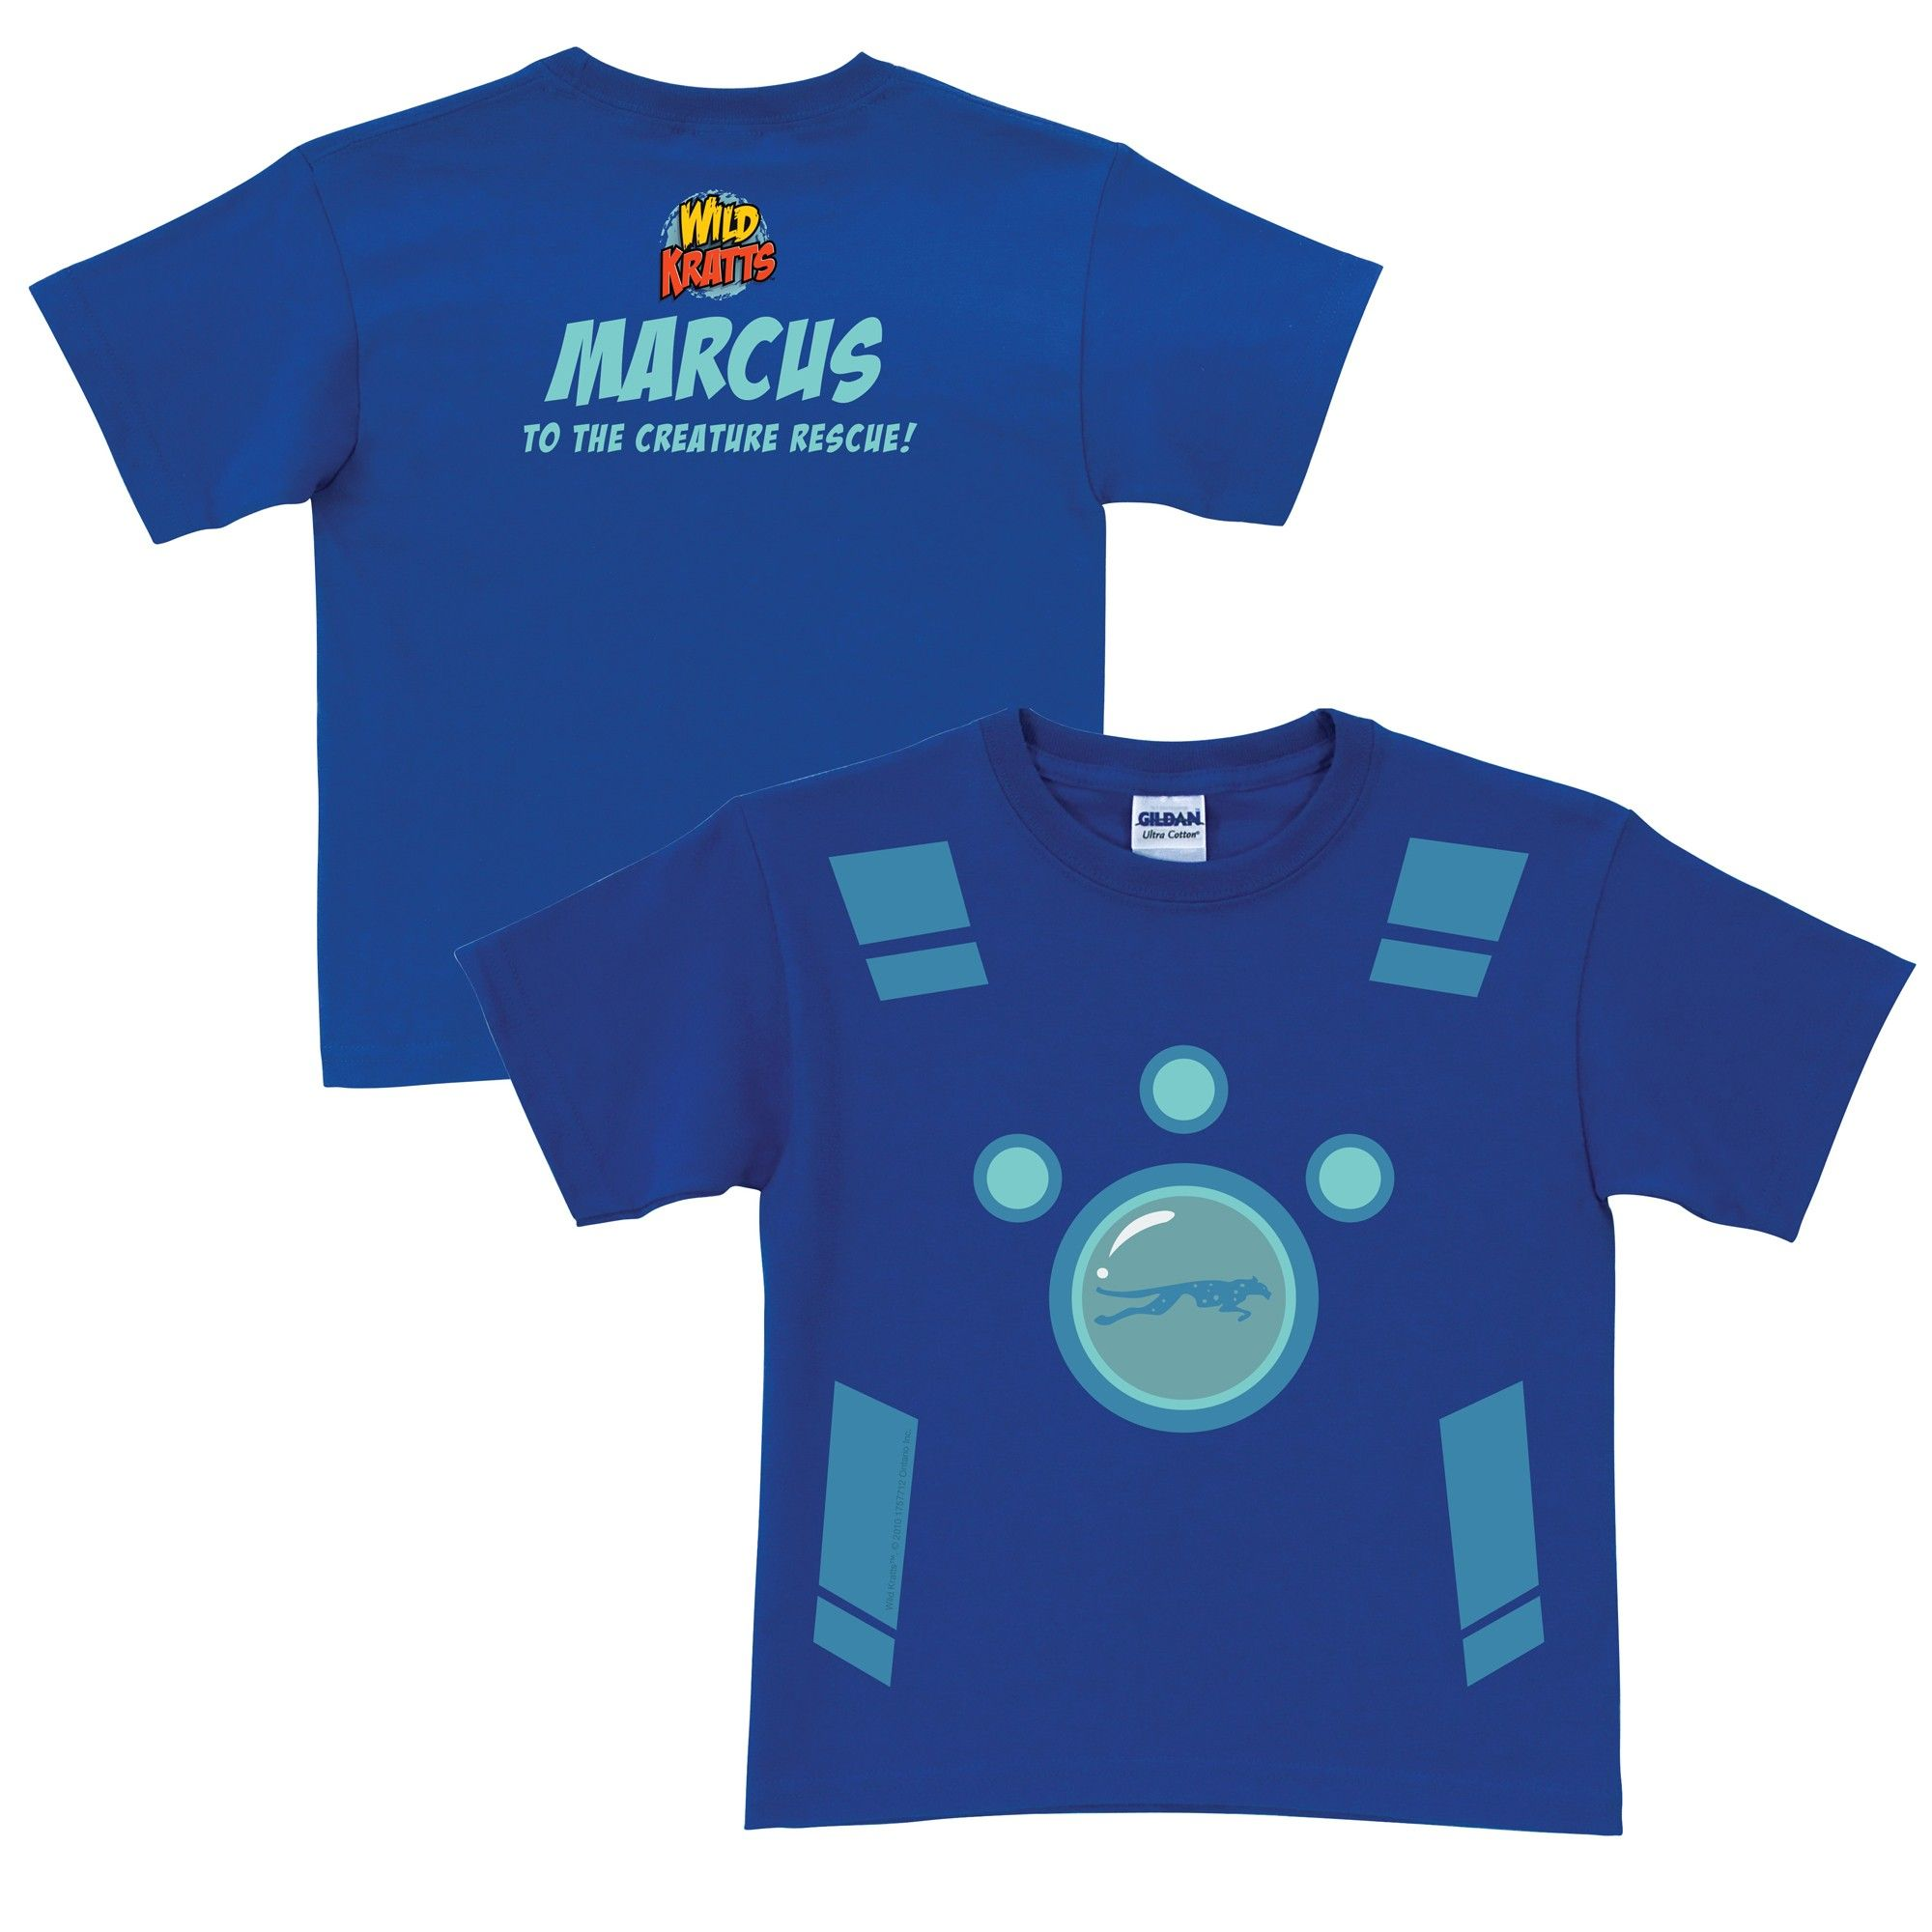 Wild Kratts Creature Power Suit Royal Blue T-Shirt from PBS Kids Shop. This is Masons fav show!!